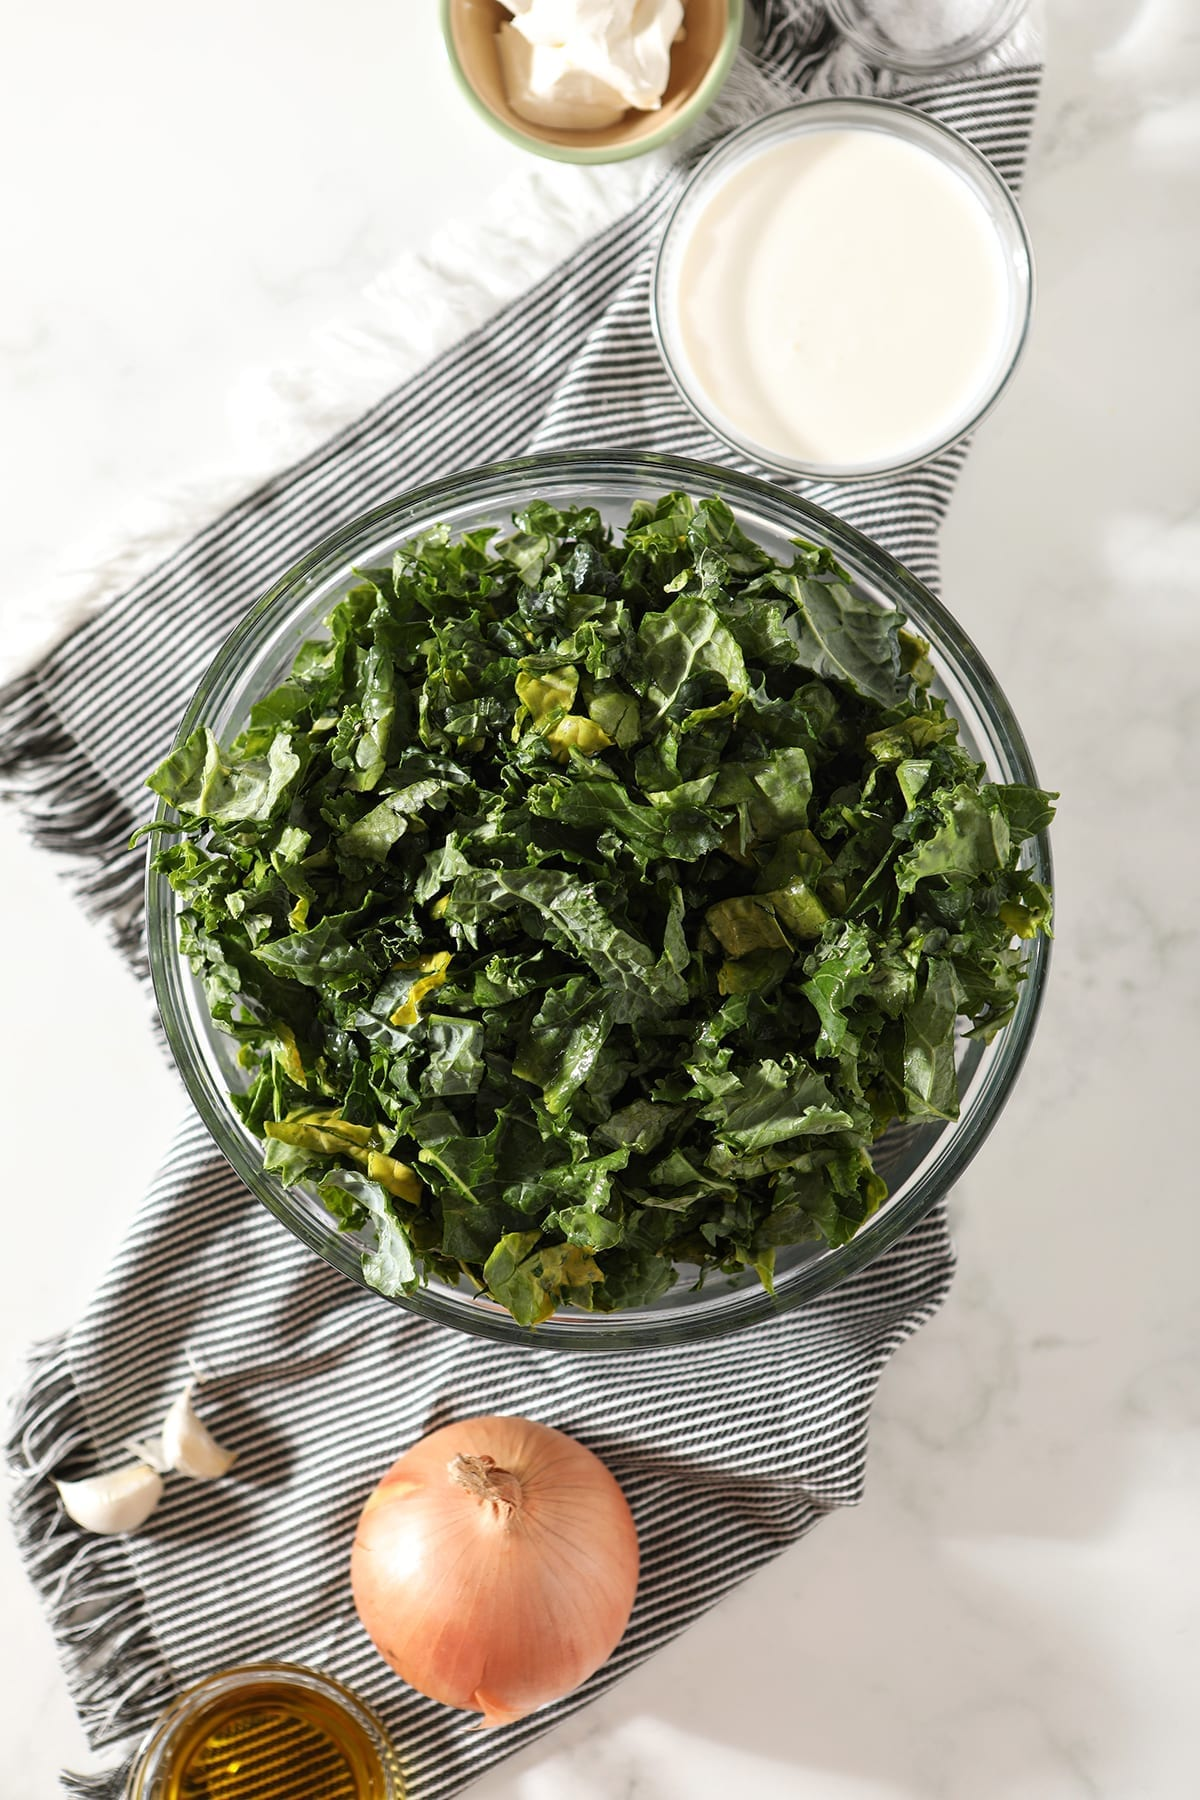 Chopped fresh kale in a bowl sitting on top of a gray striped towel, sitting next to an onion, garlic and other ingredients